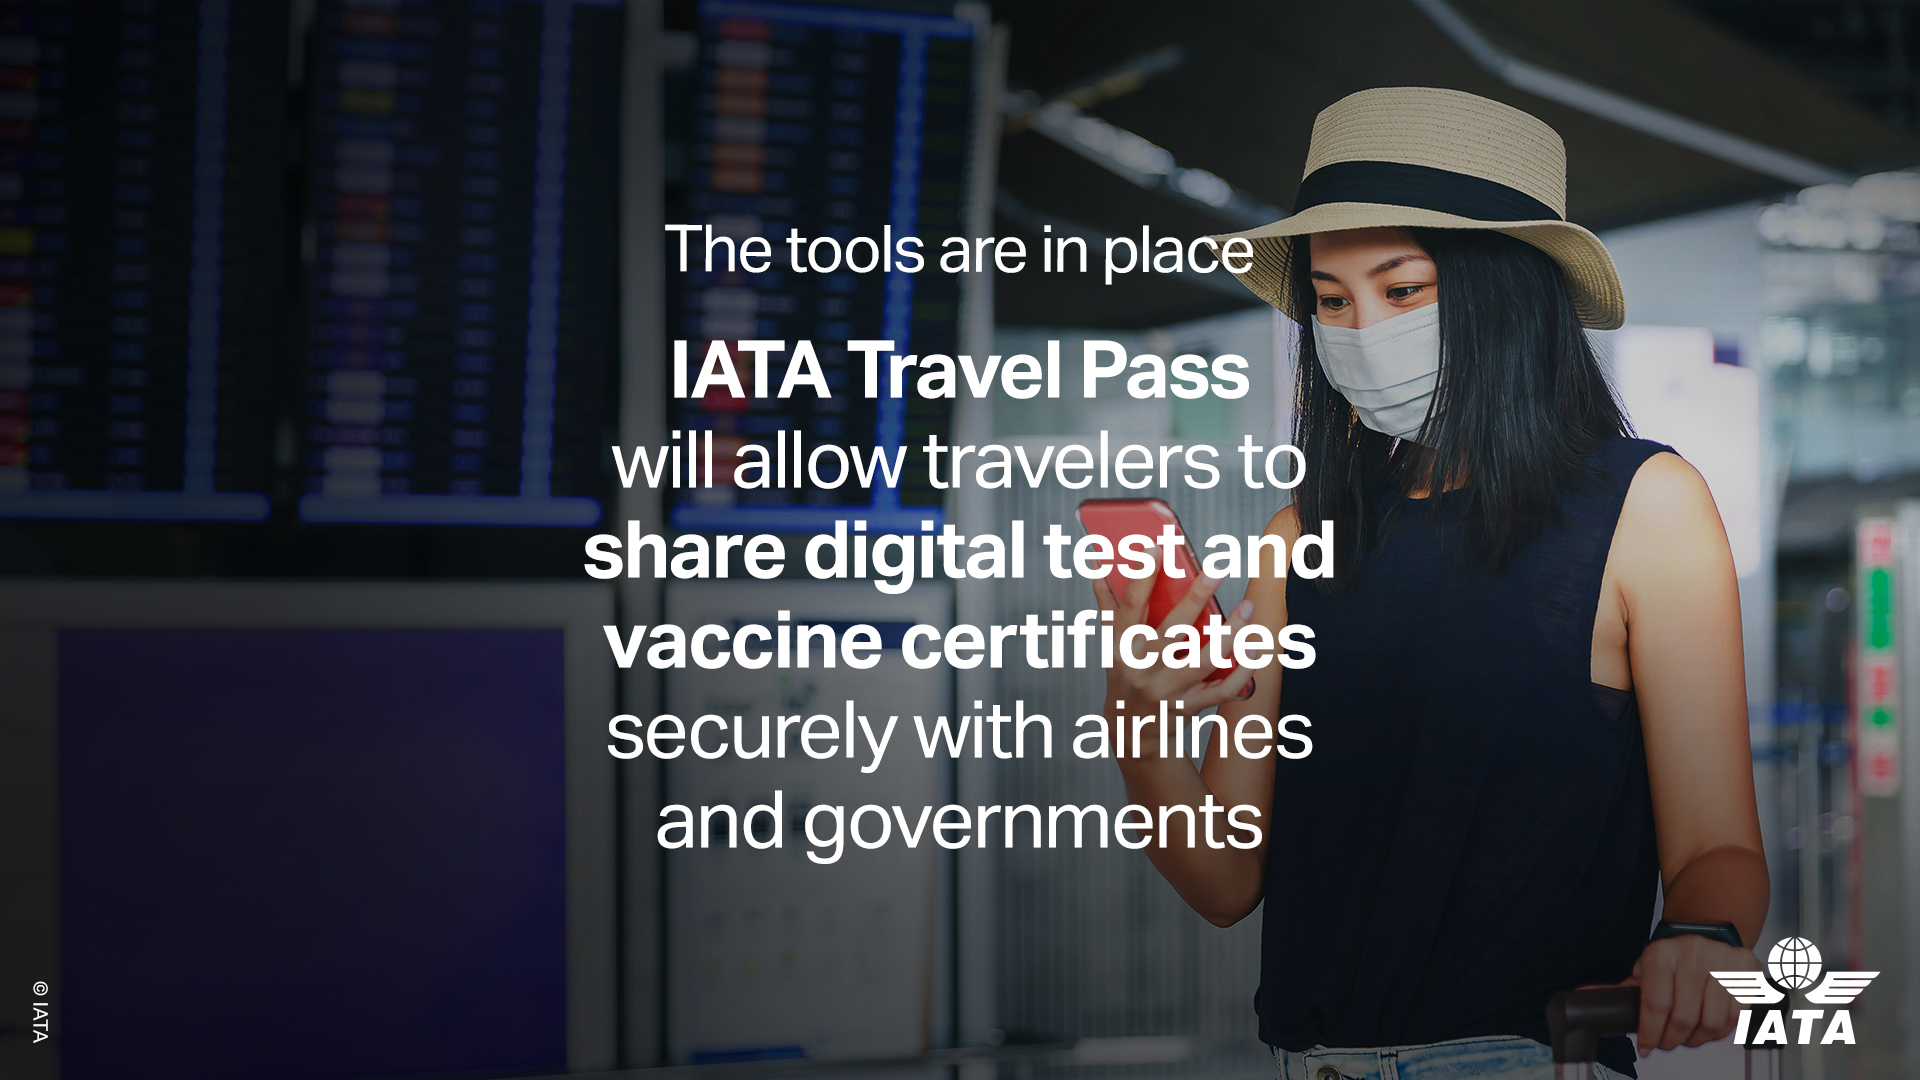 IATA Travel Pass - Can This Replace Quarantine?